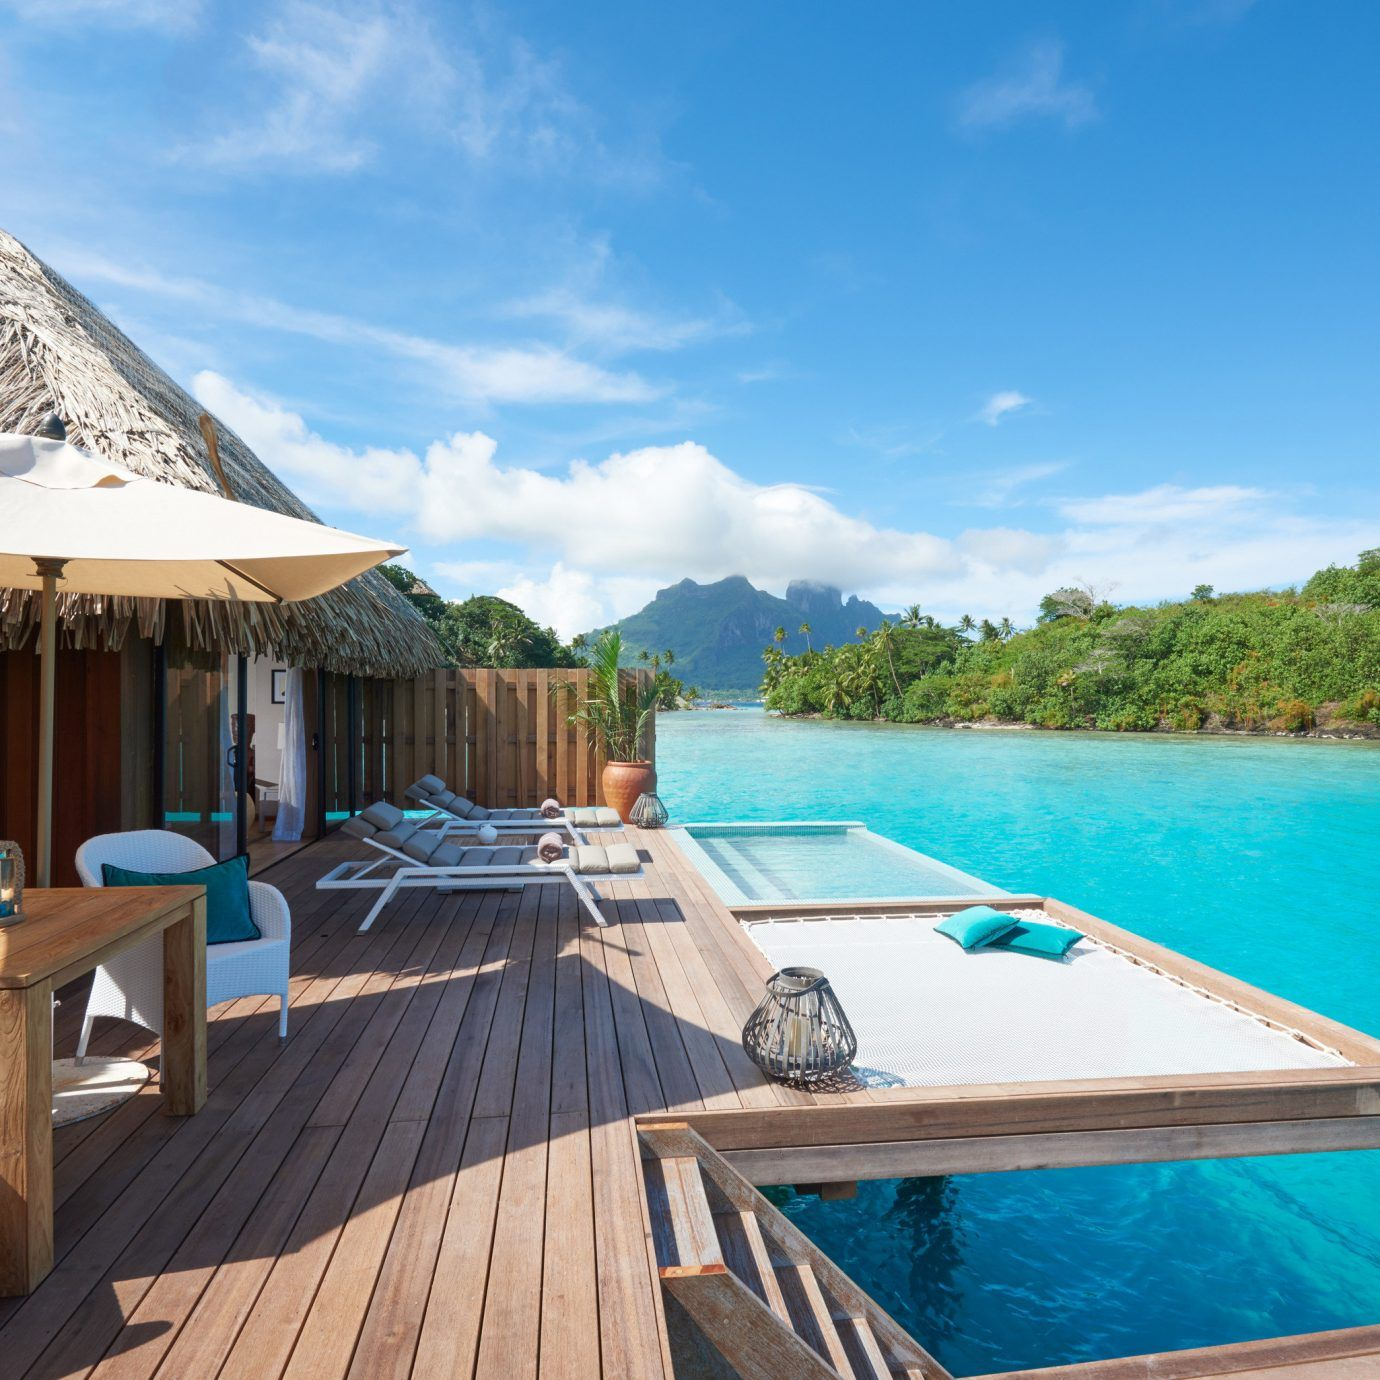 The Worlds Best Overwater Bungalows for 2020 with Prices